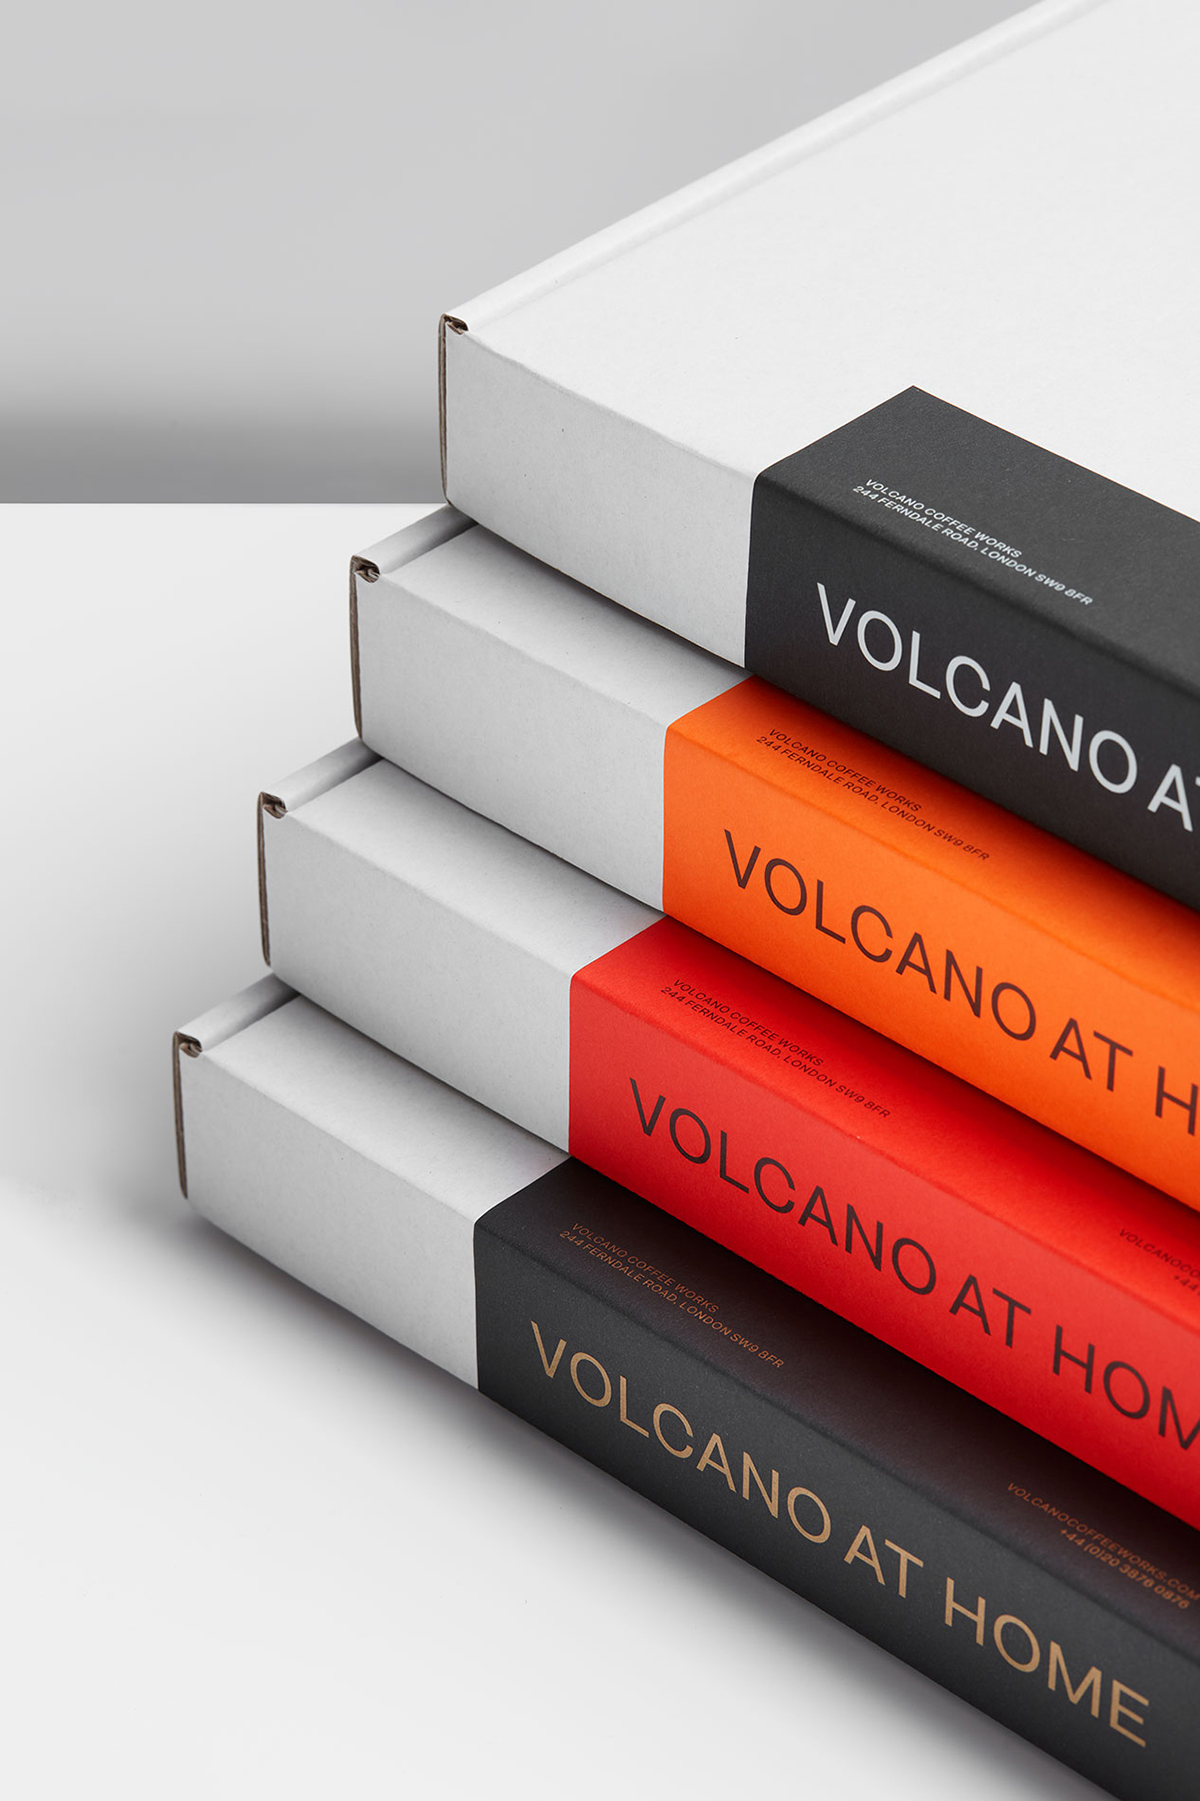 volcano-at-home-branding-packaging-coffee-goodfromyou-8.jpg